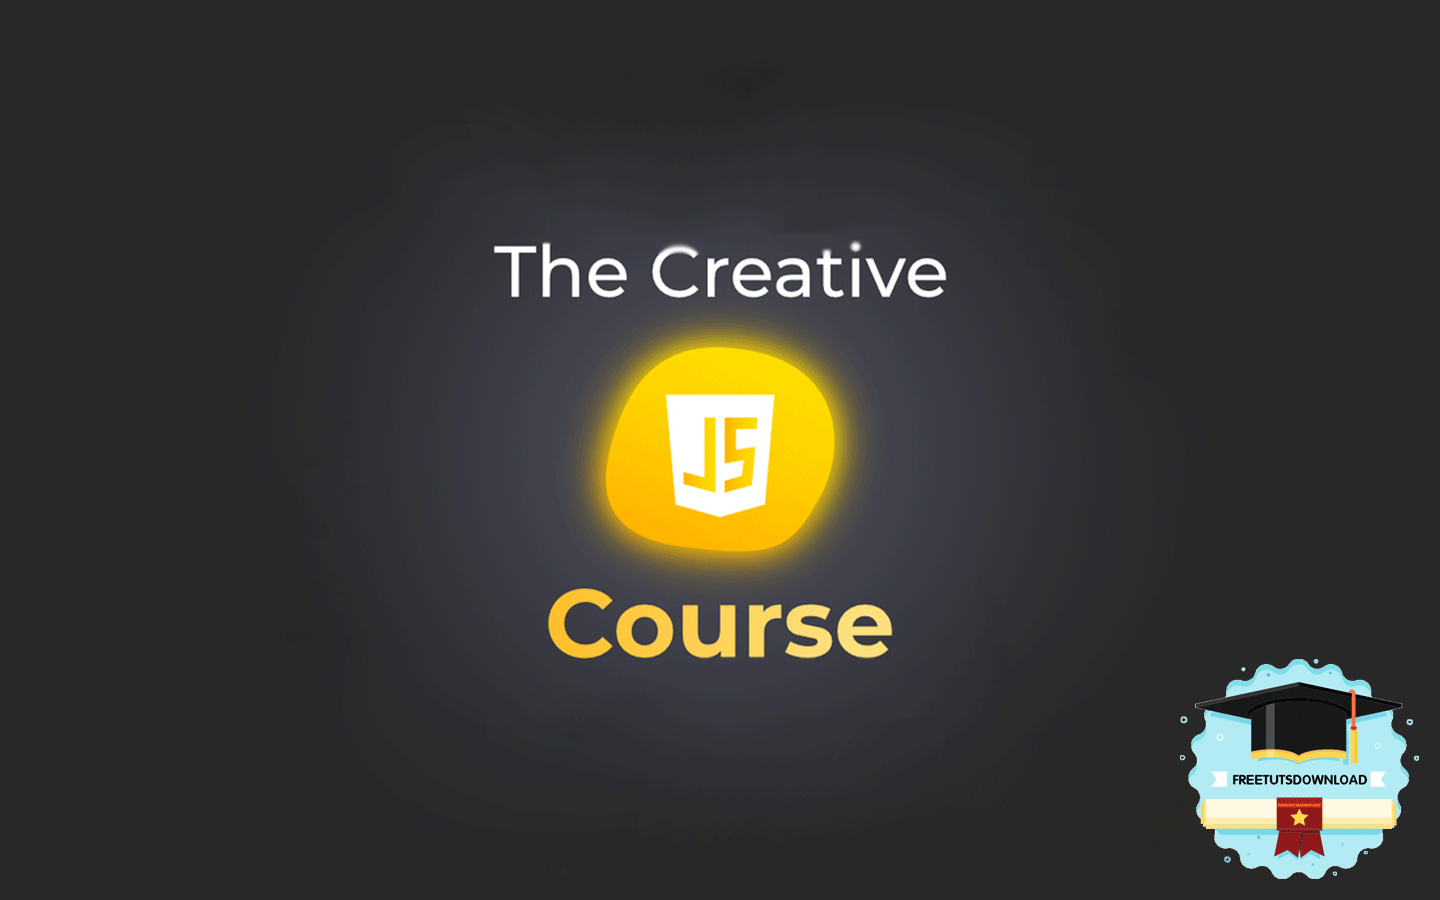 The Creative Javascript Course - DevelopedByEd